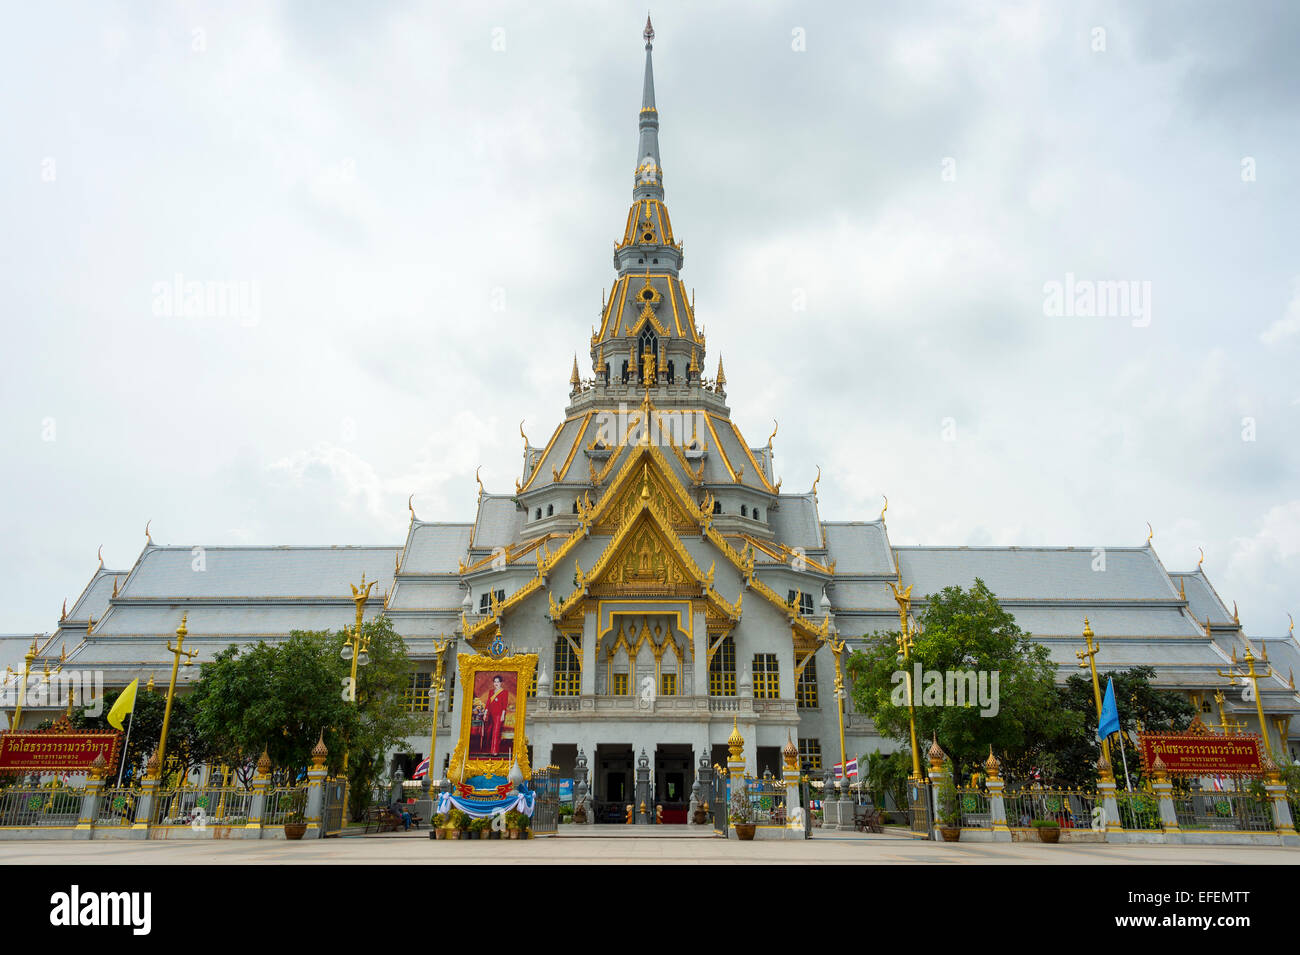 The famous Wat Sothorn temple in Chachoengsao, Thailand - Stock Image